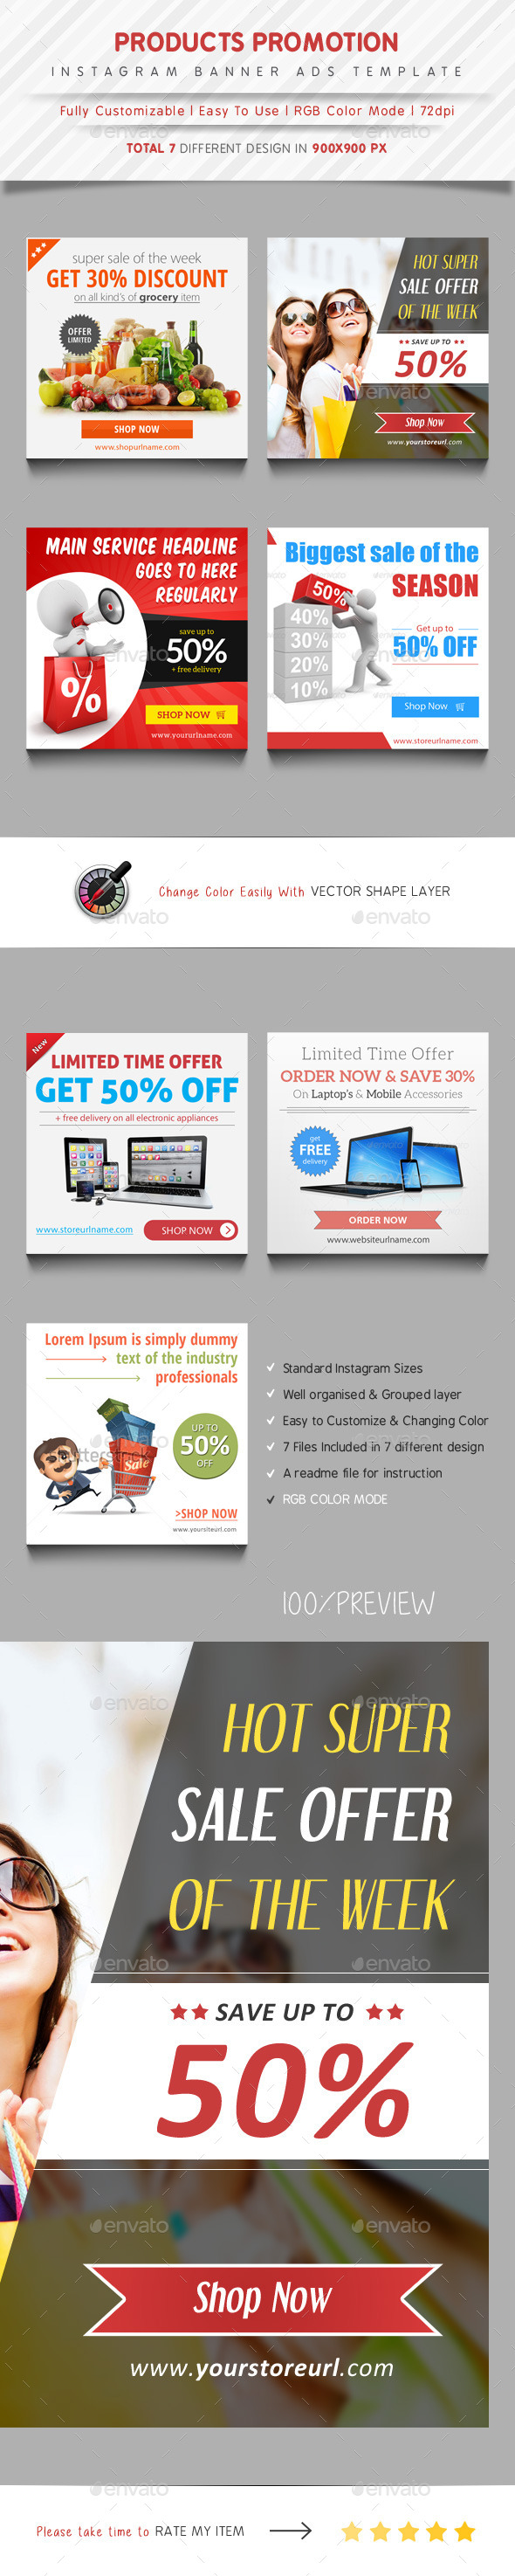 Instagram Banner Ads Template By Samiul GraphicRiver - Instagram ad template